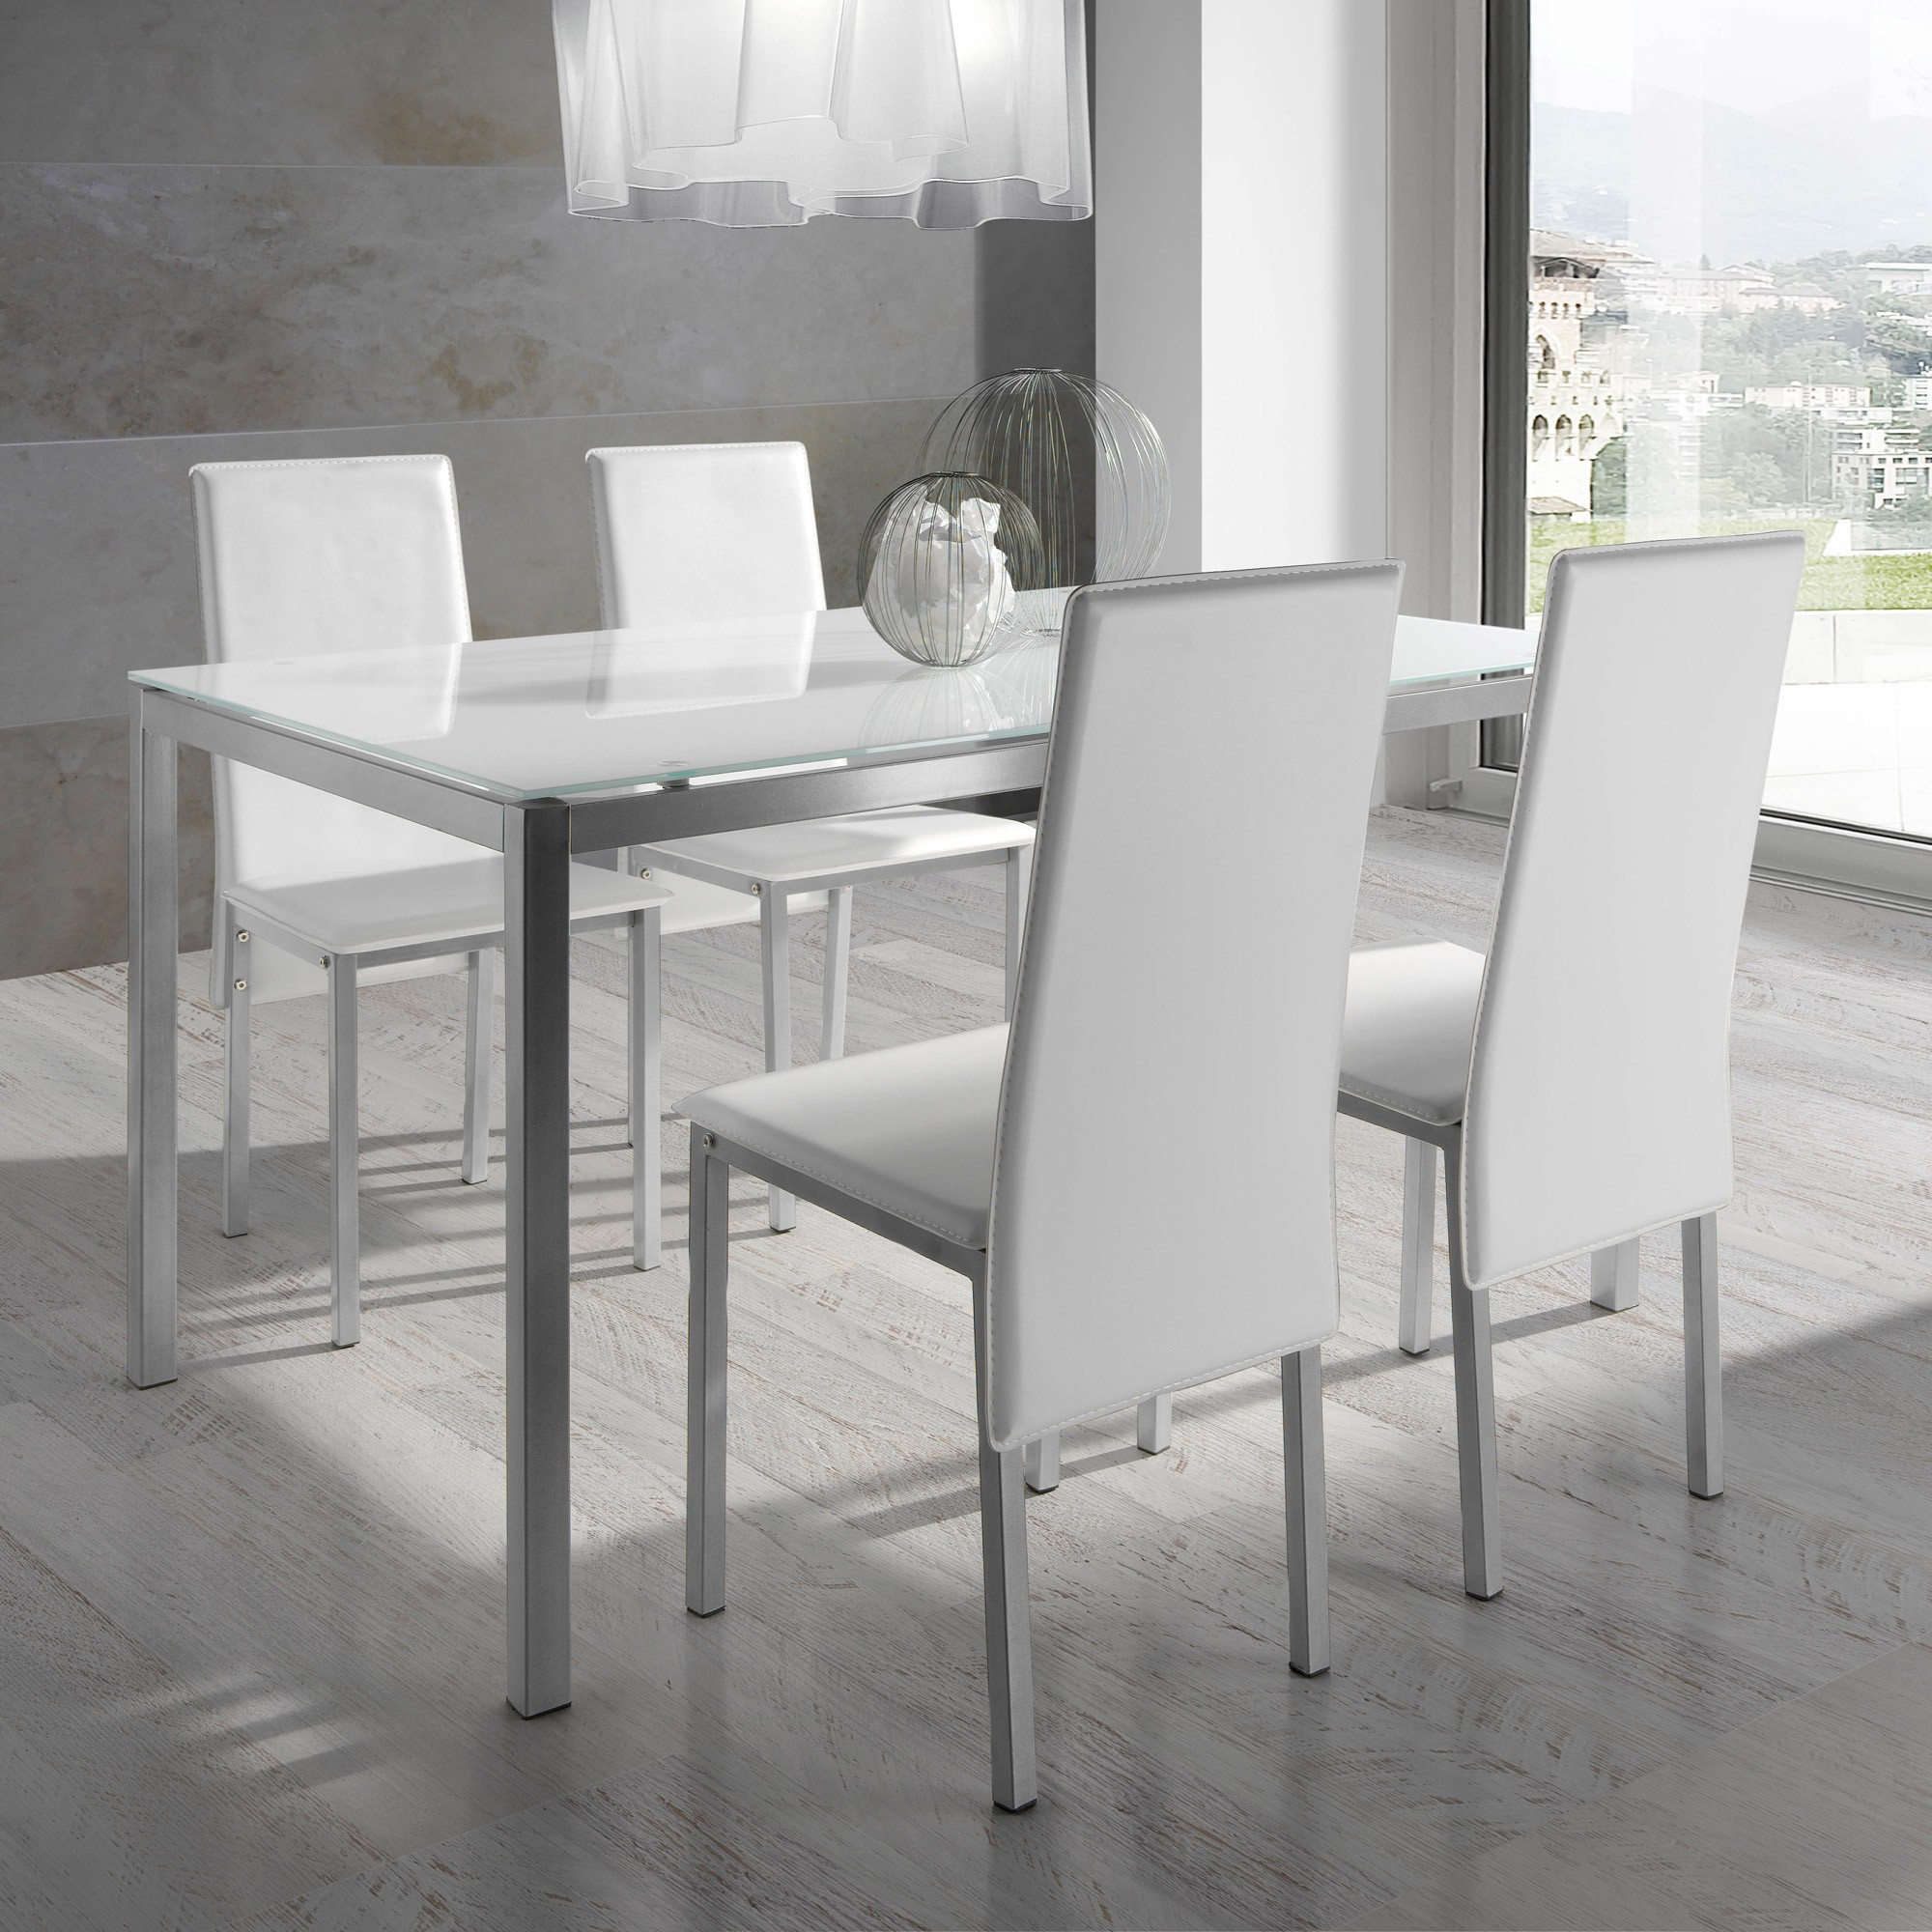 Ensemble table et chaise salle a manger but chaise for Ensemble salle a manger conforama